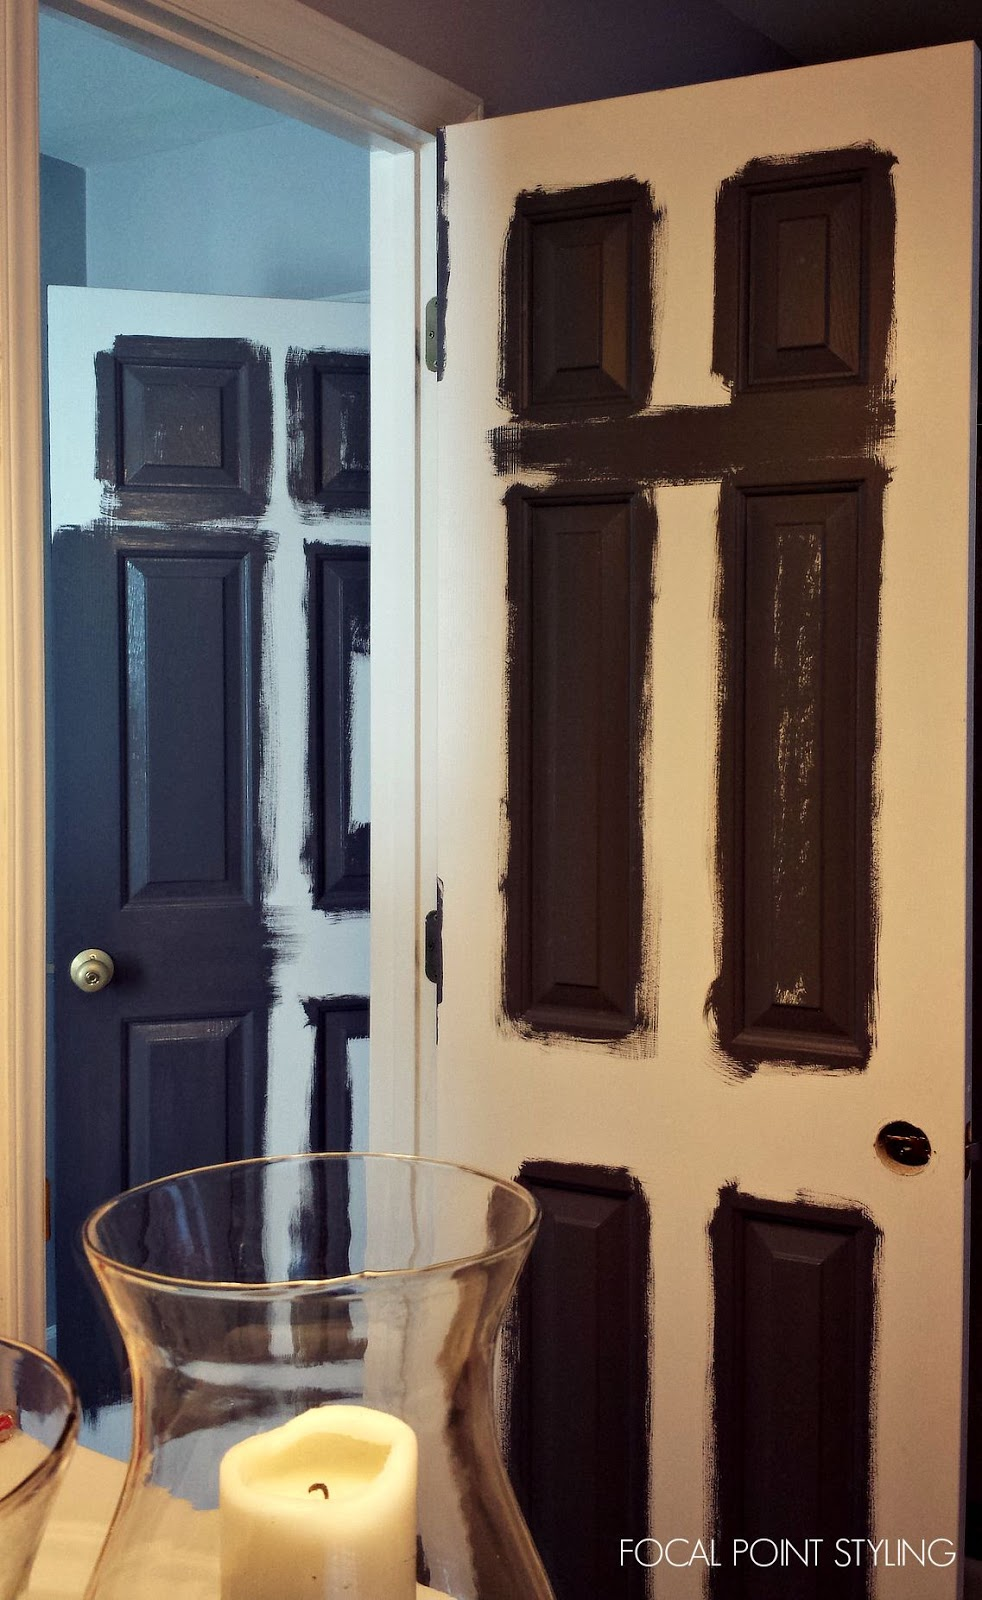 FOCAL POINT STYLING: How To Paint Interior Doors Black U0026 Update Brass  Hardware